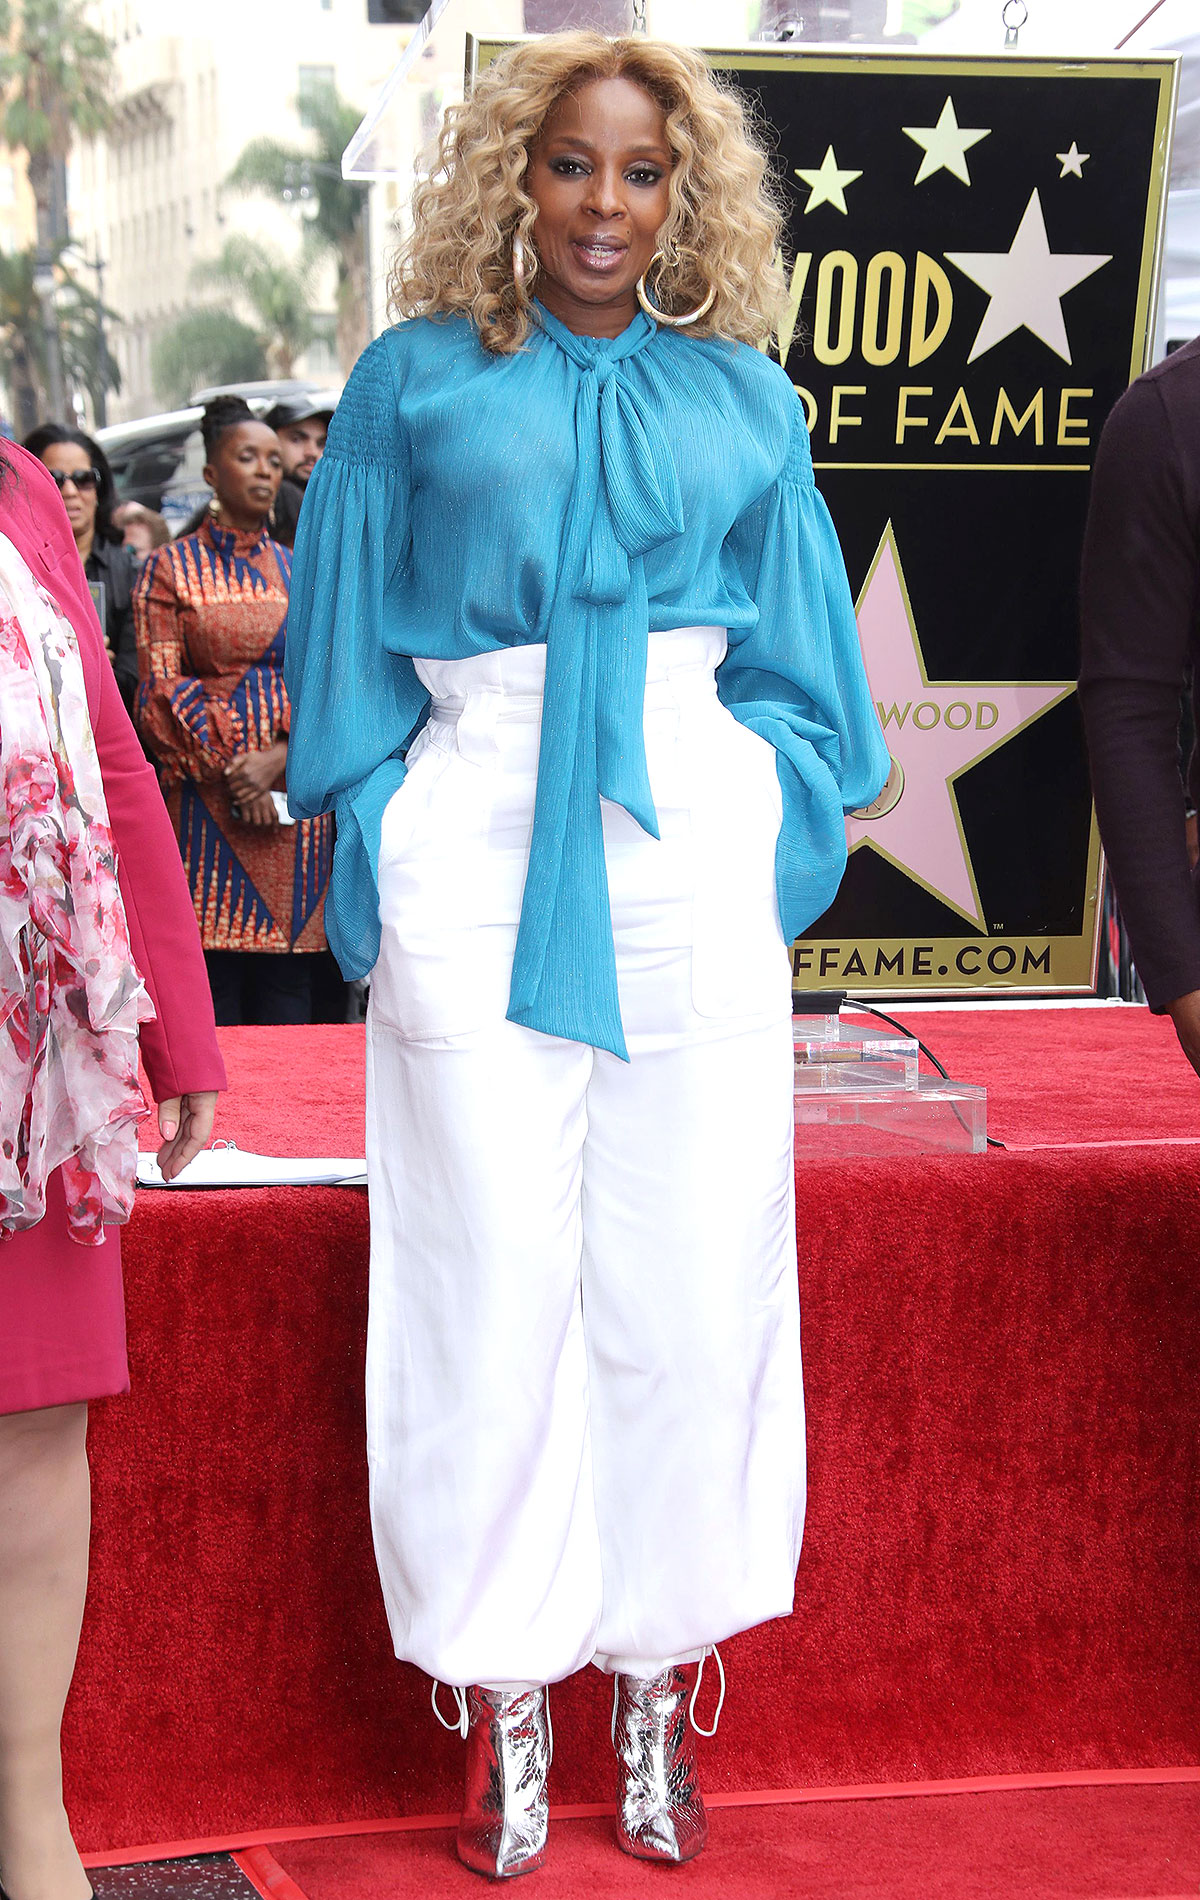 Taraji P. Henson honored with a star on the Hollywood Walk of Fame, Los Angeles, USA - 28 Jan 2019